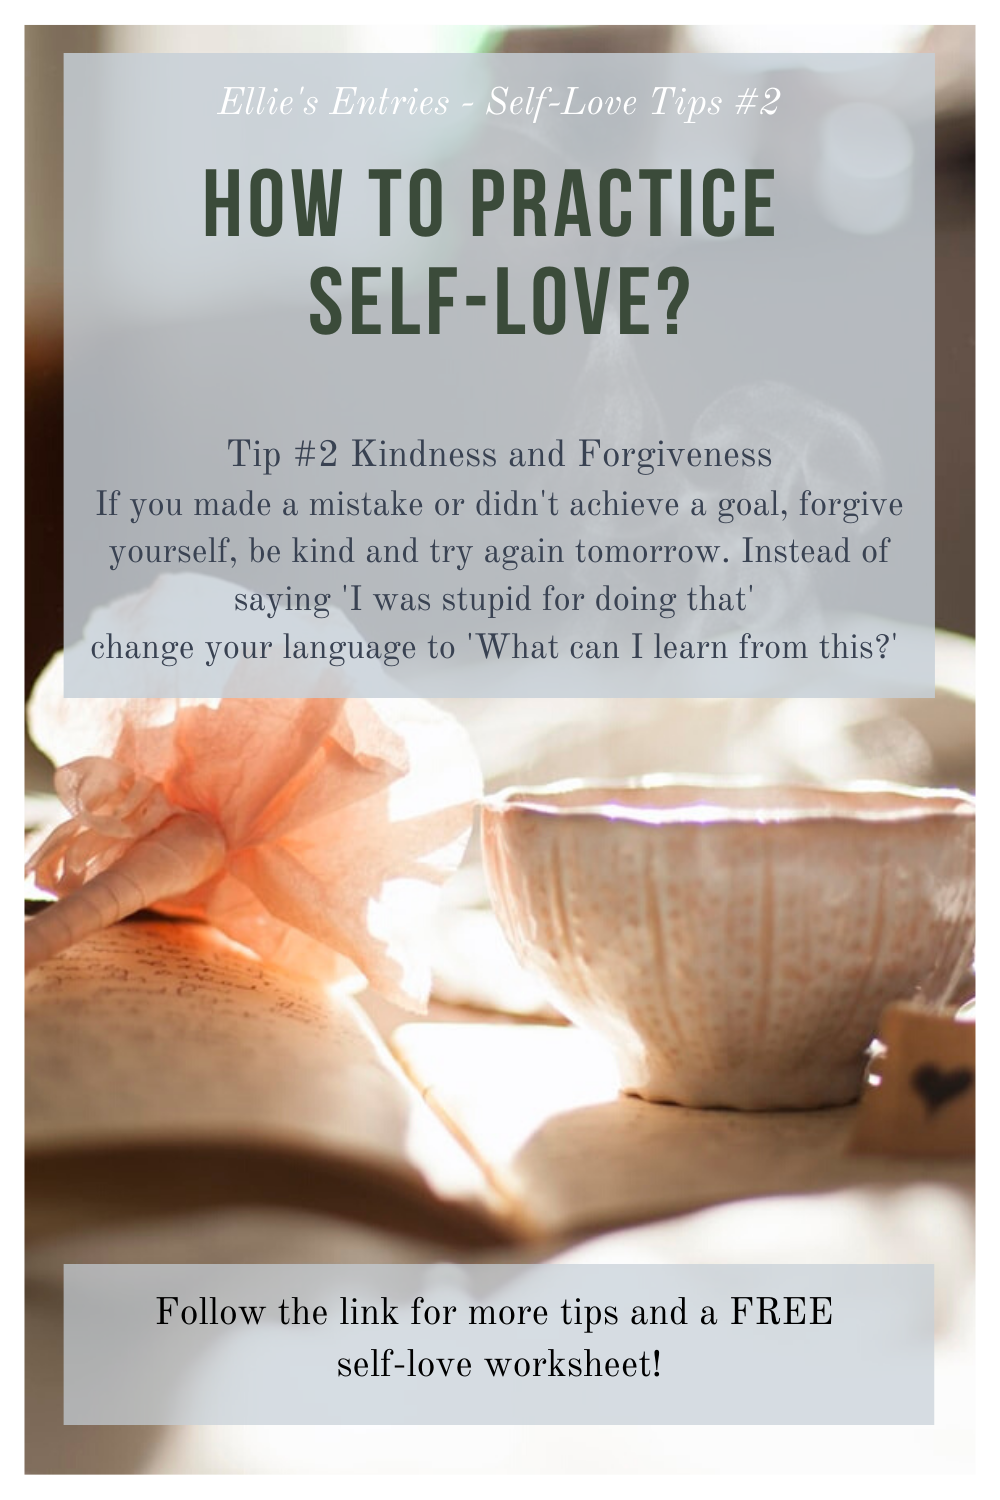 7 Ways To Self-Care And Self-Love As A Muslim Woman In